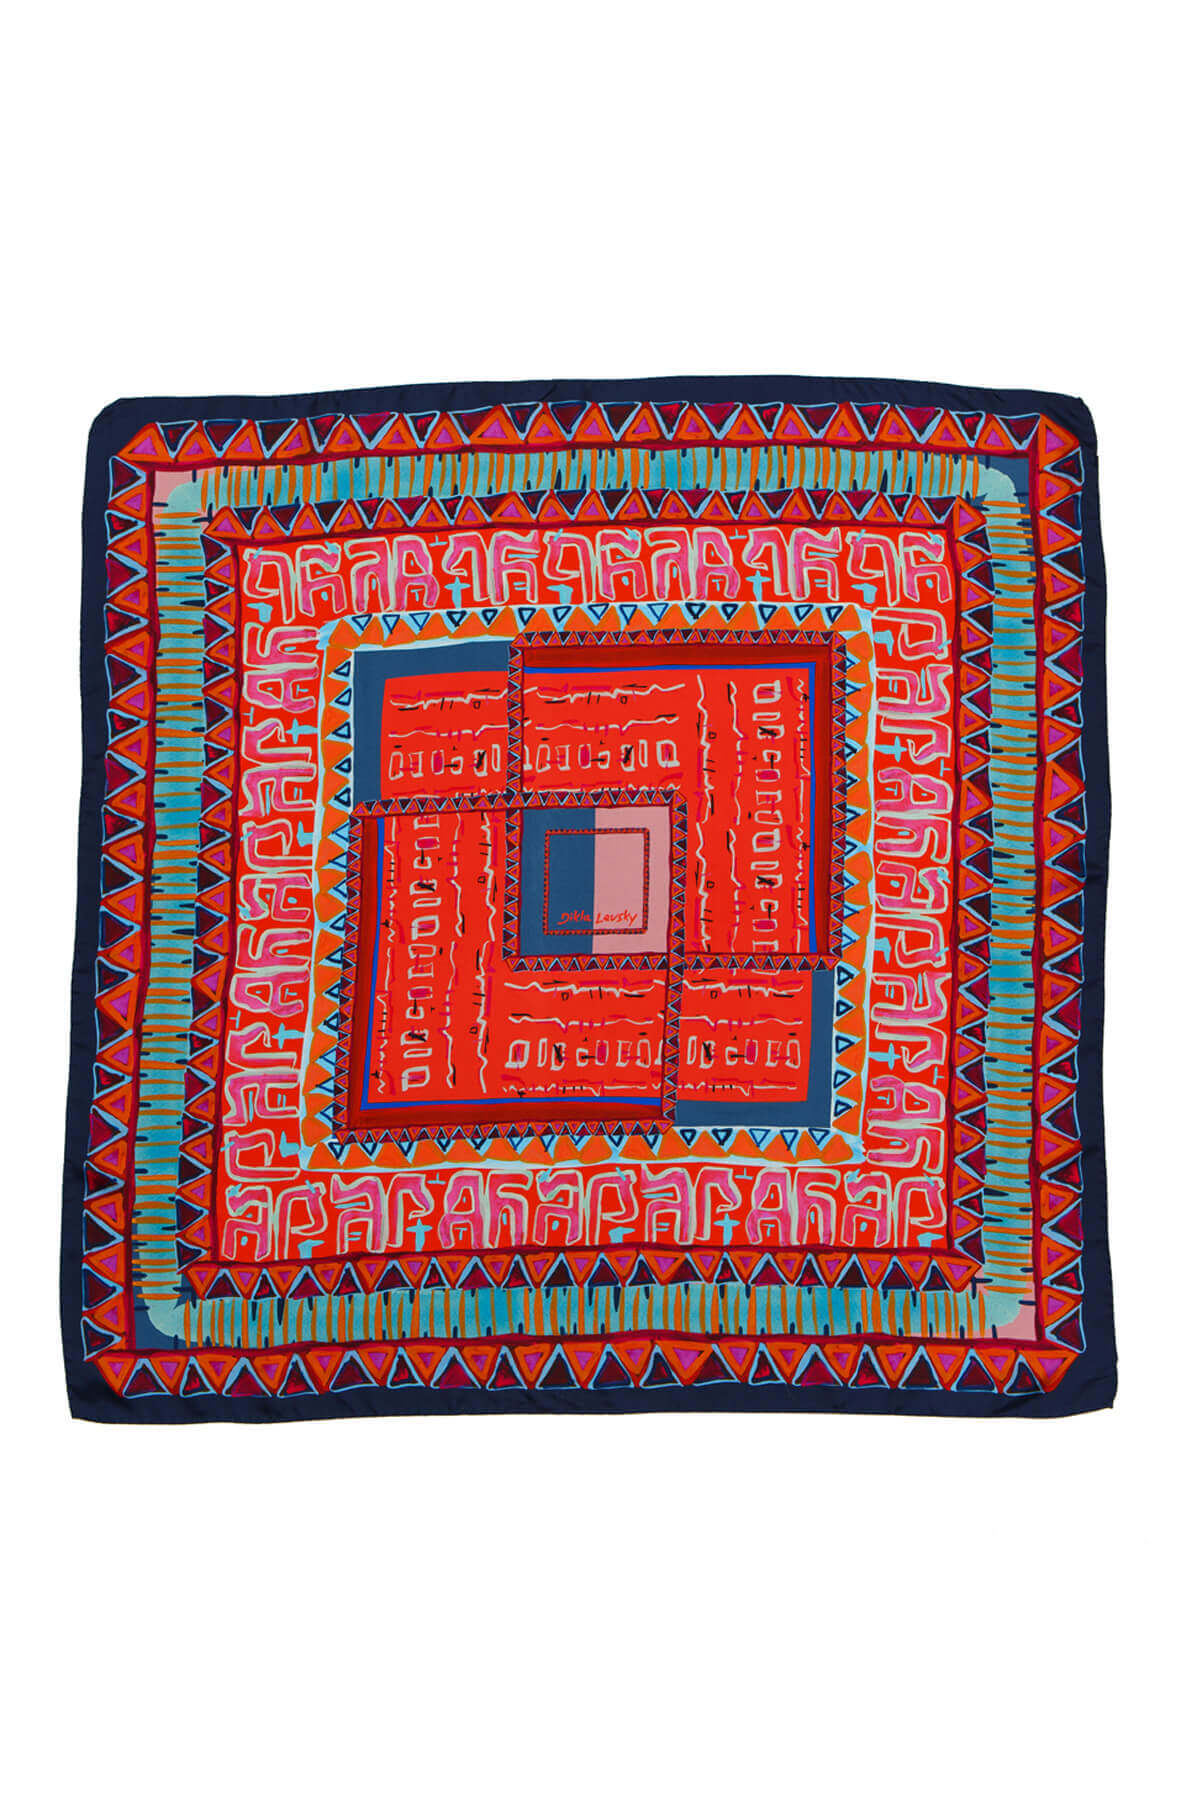 Printed silk scarf, red scarf, Silk Scarf; Dikla Levsky; Printed Scarf; Foulard Soie; Square Scarf; Made In Italy; Luxury Accessories; Designer Scarf; Ethnic Scarf